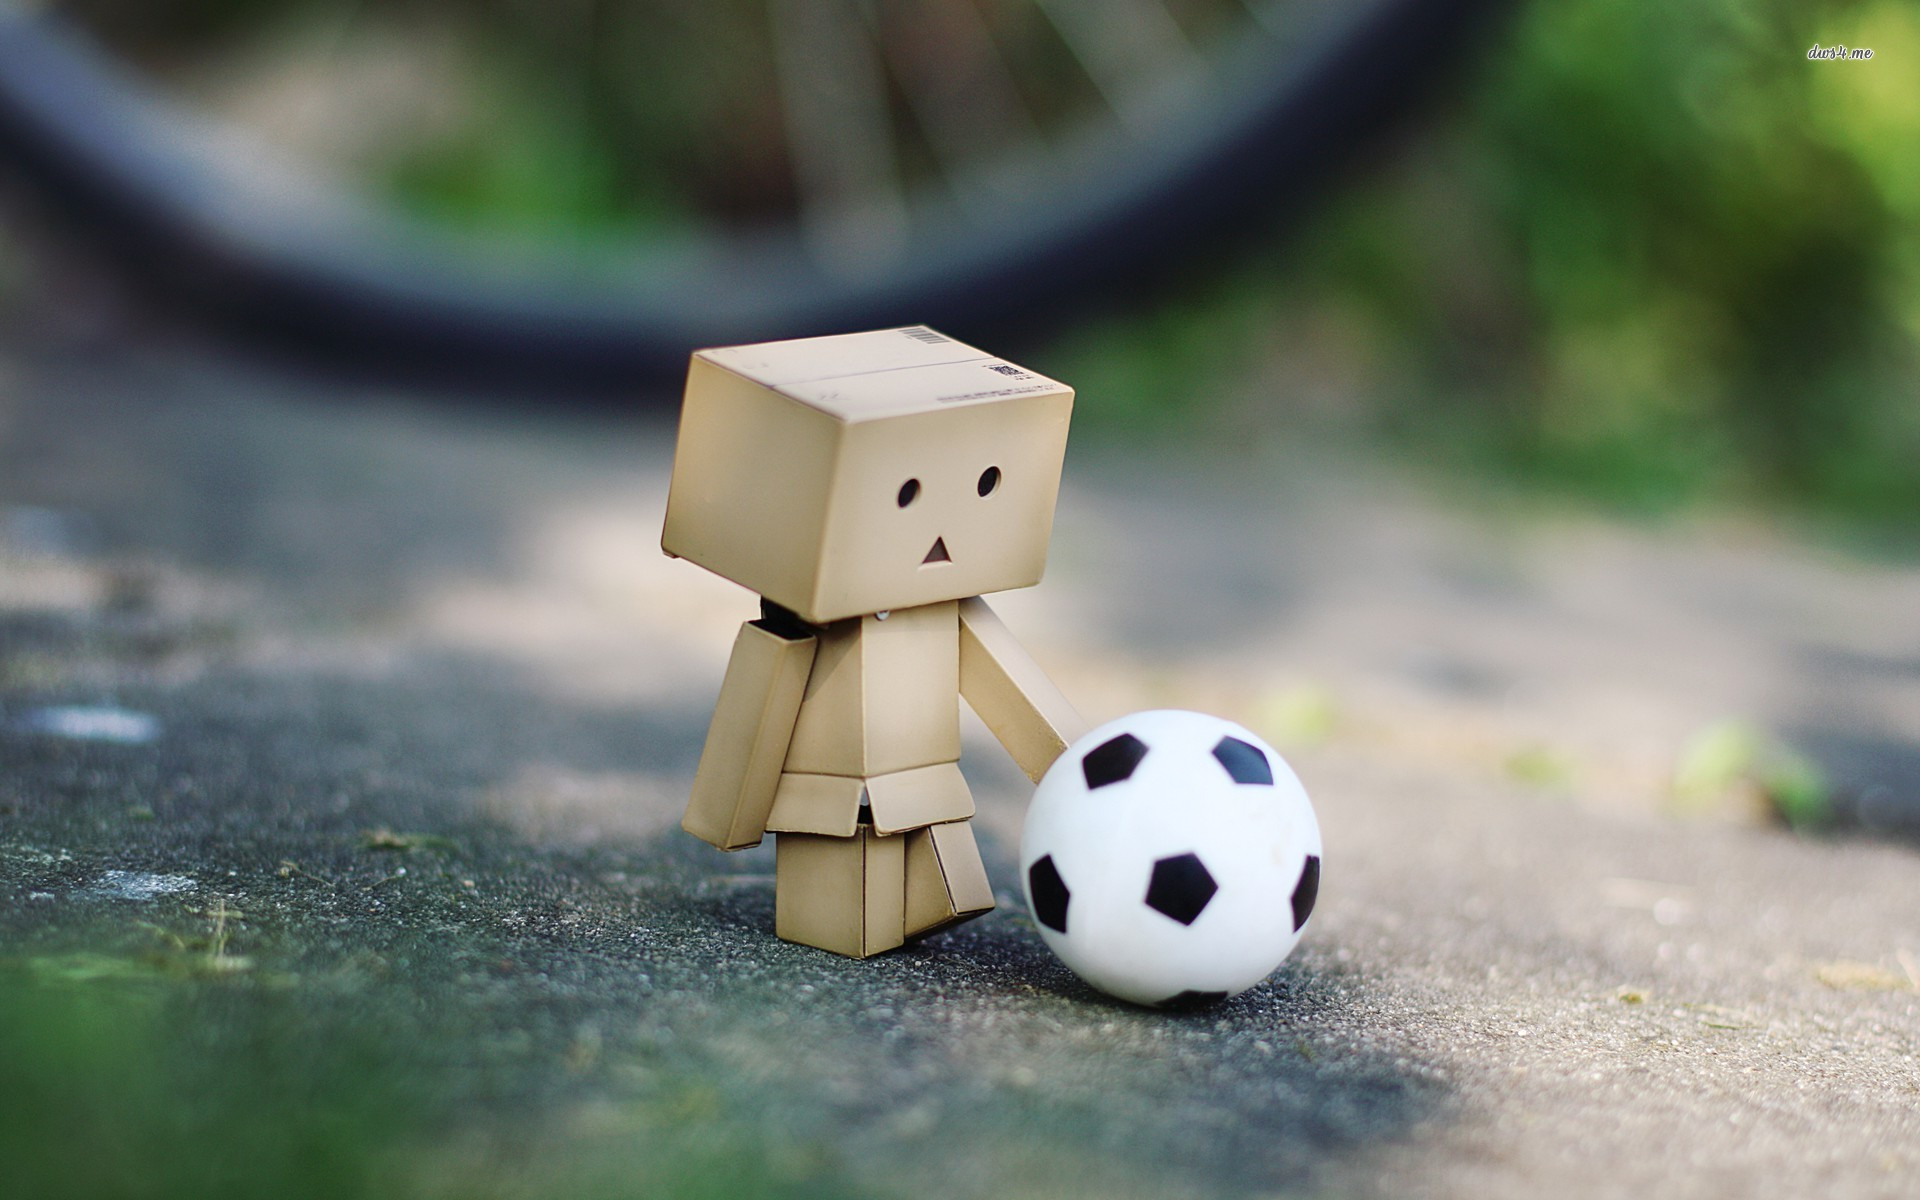 48 Cool Green Soccer Ball Wallpapers On Wallpapersafari: [45+] Cute Soccer Wallpapers On WallpaperSafari